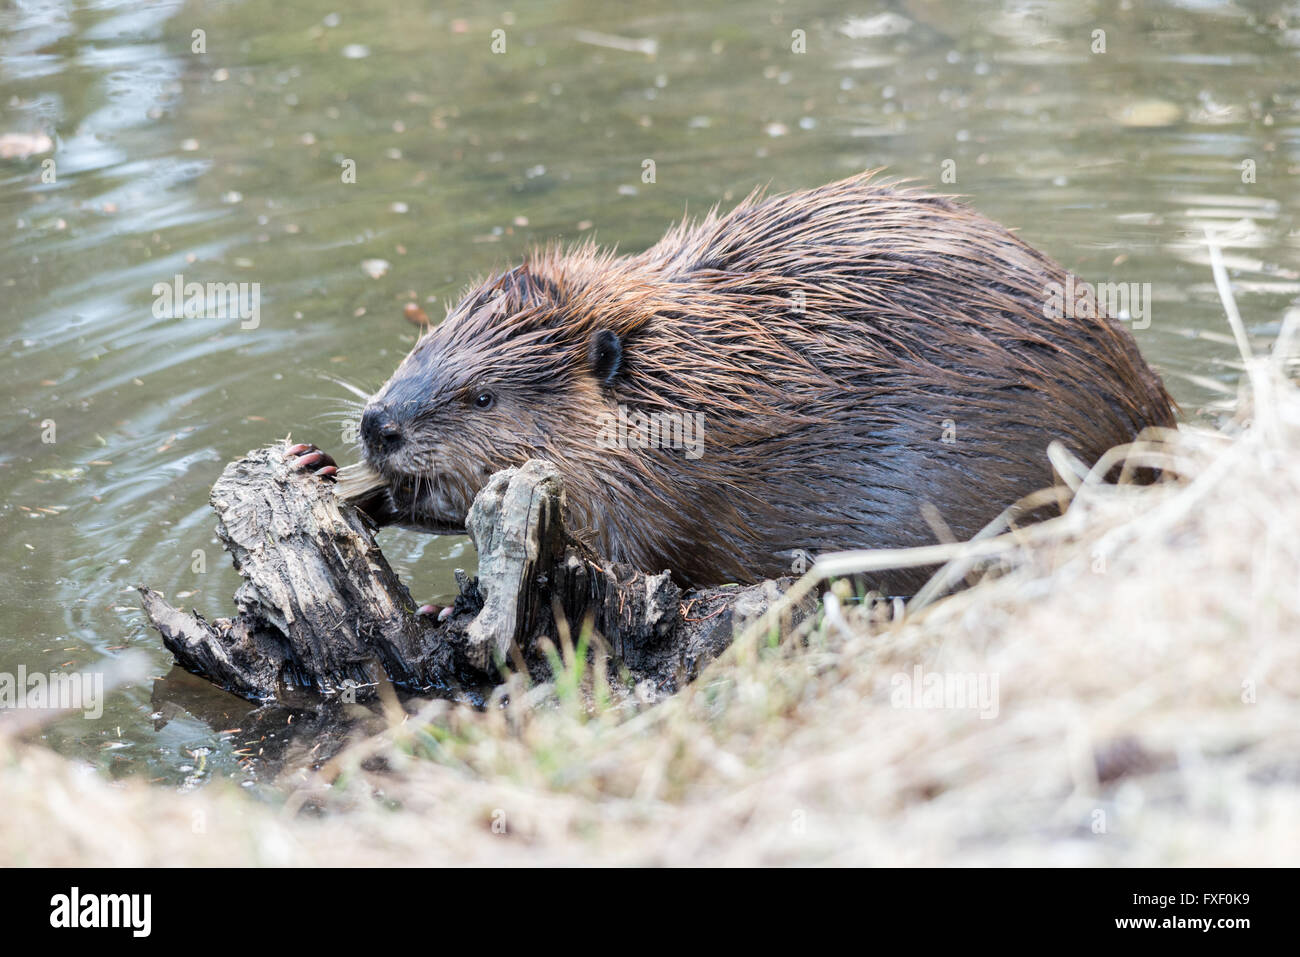 Beaver Chewing Stock Photos & Beaver Chewing Stock Images - Alamy